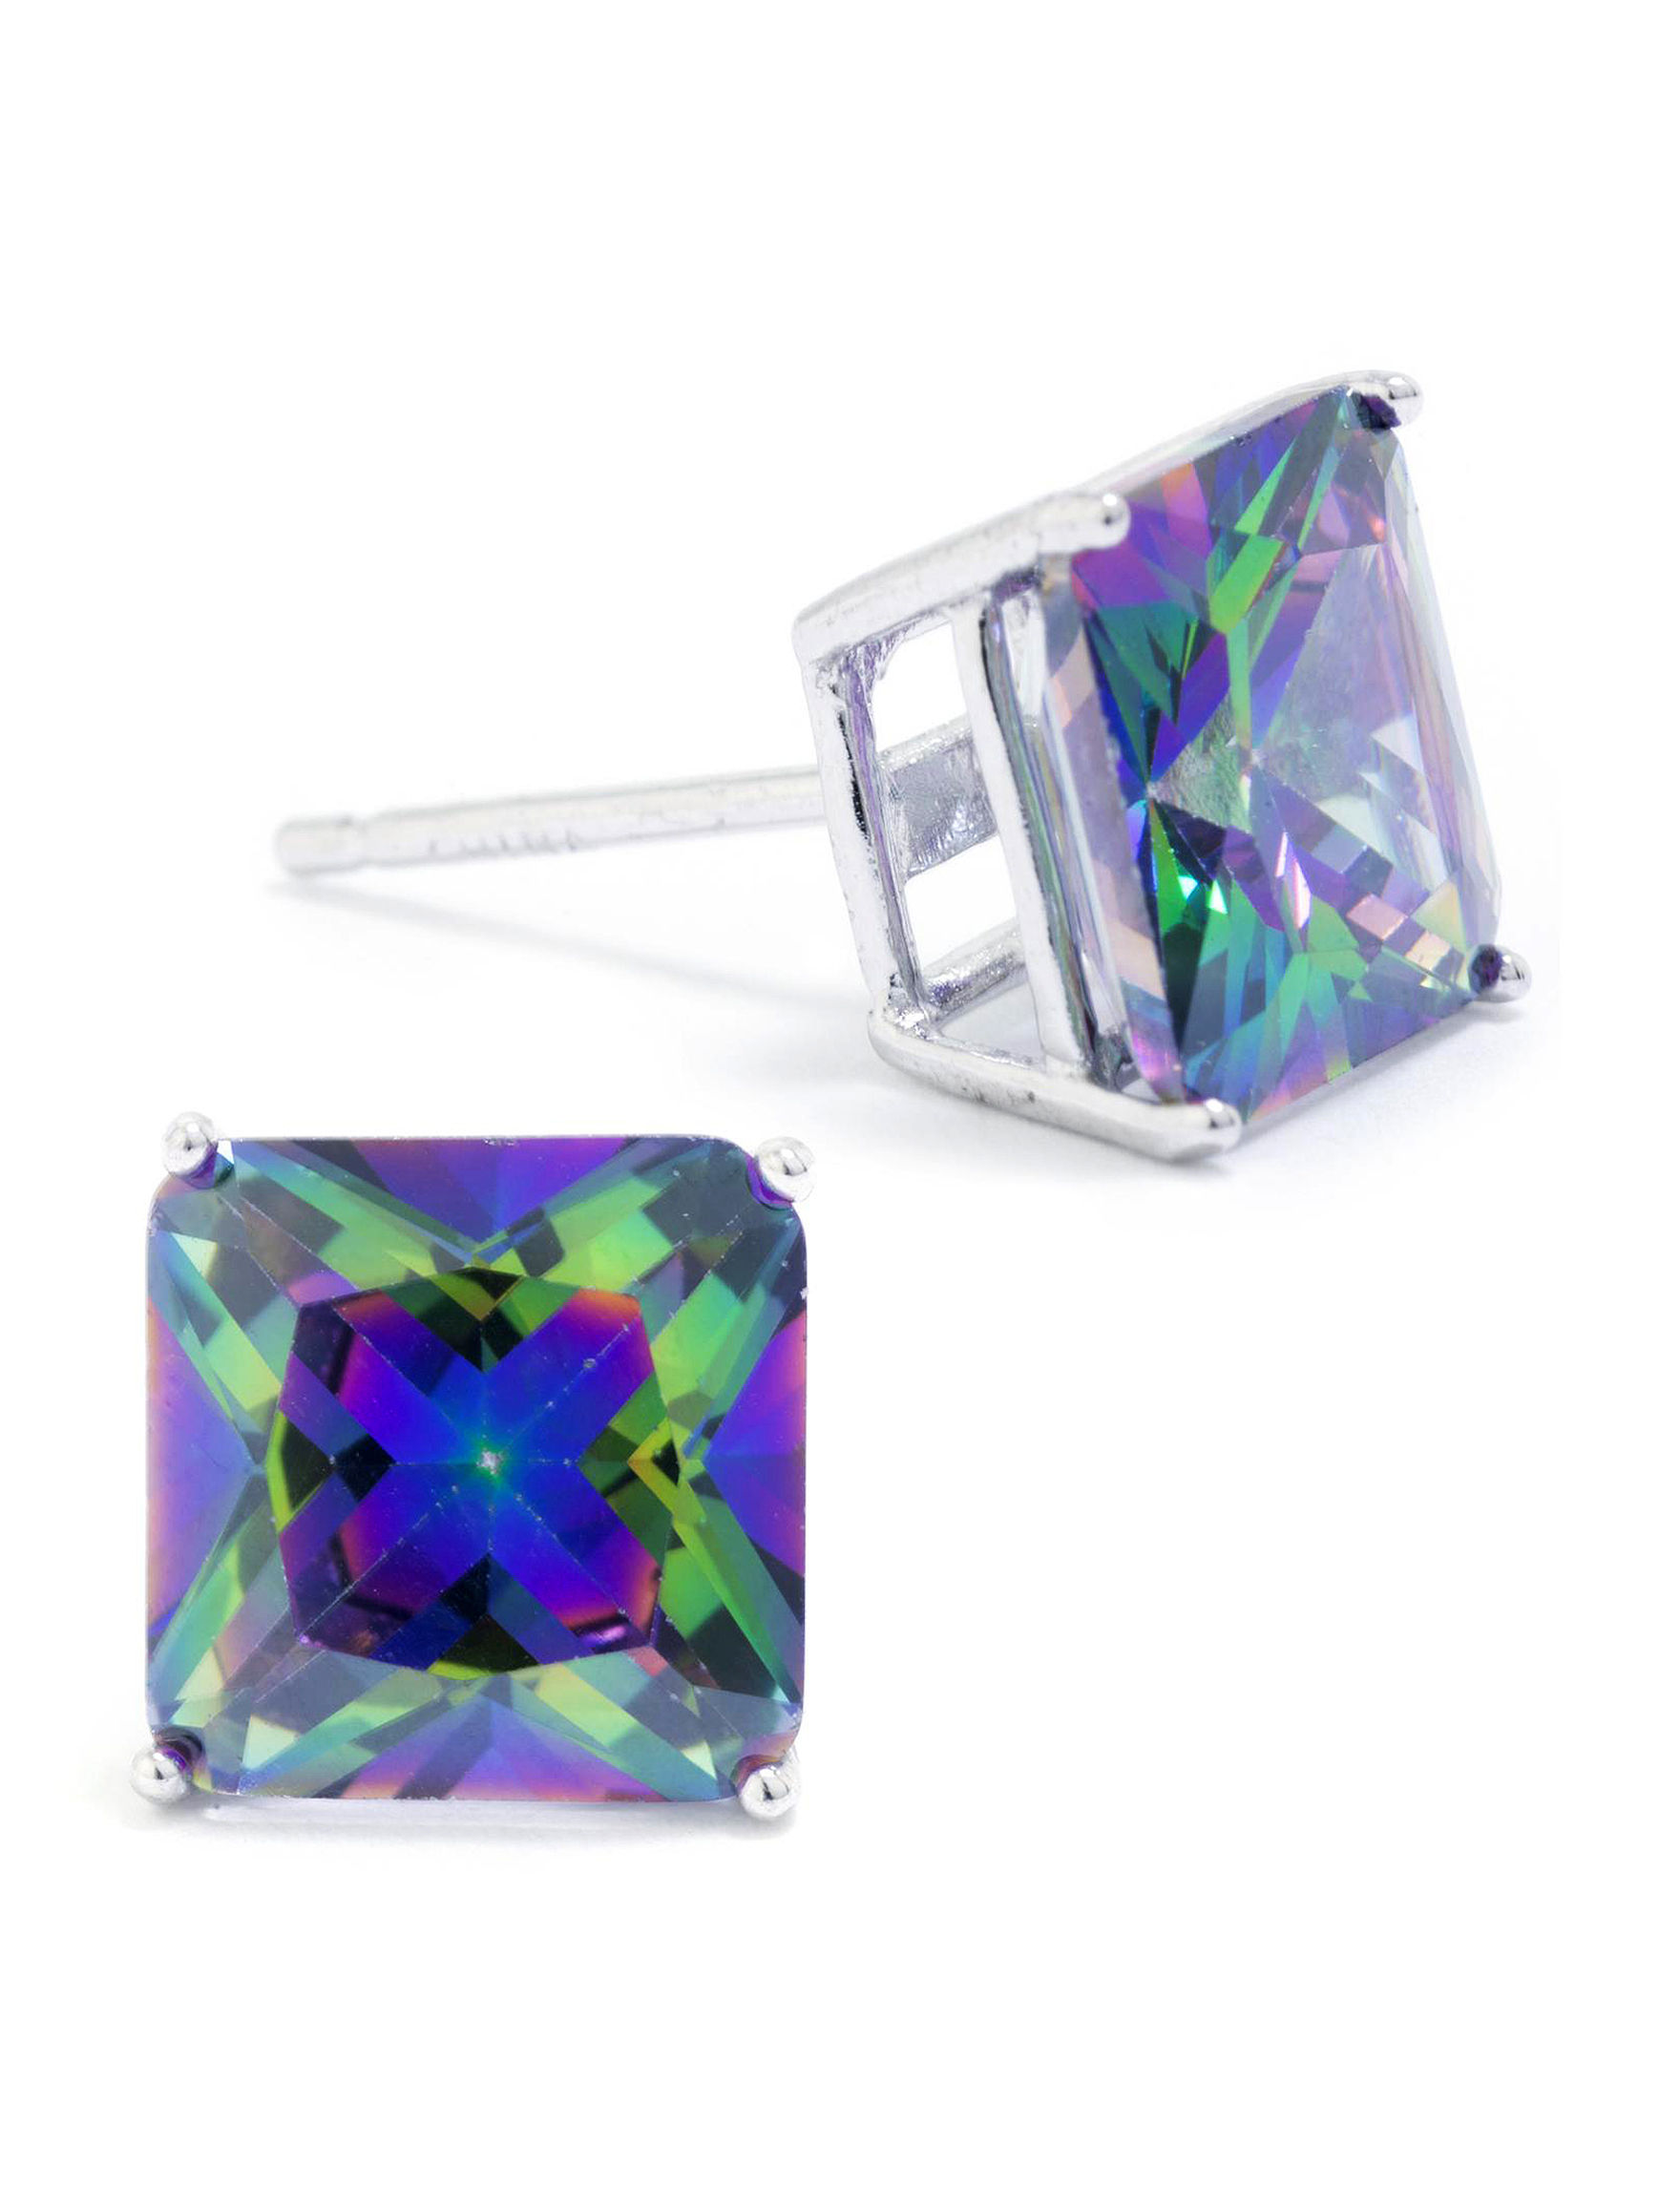 Athra Sterling Silver Studs Earrings Fine Jewelry